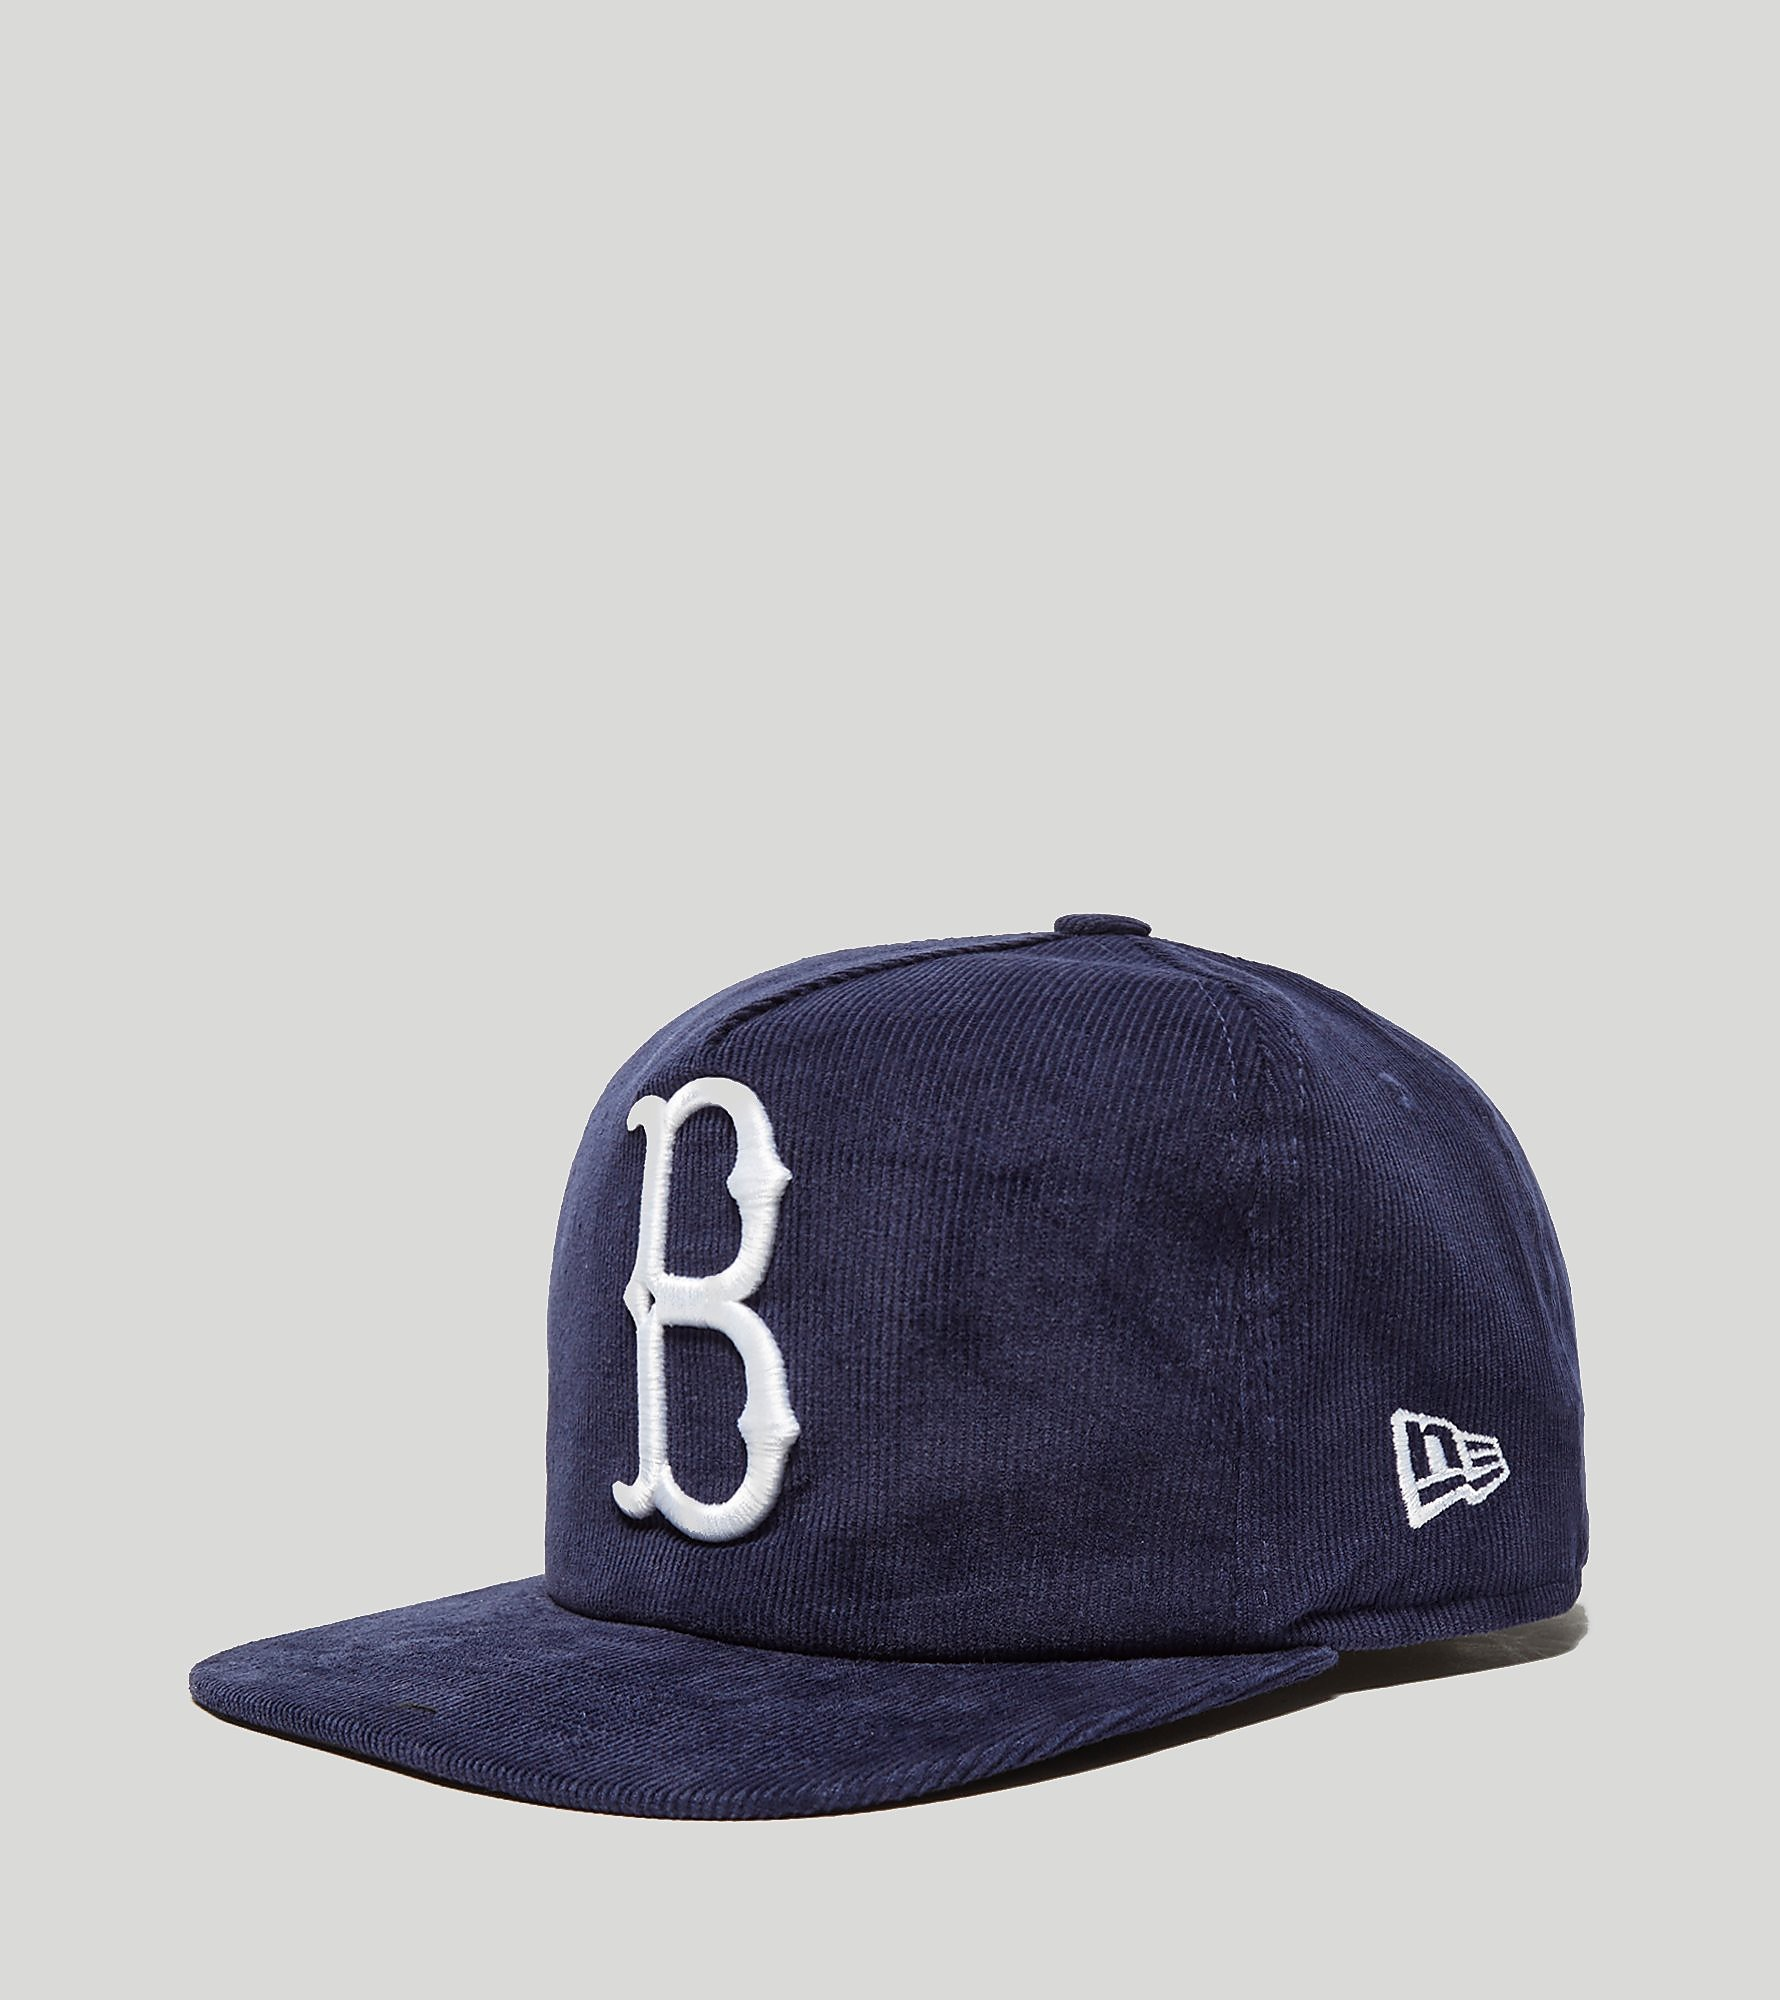 New Era MLB Cooper 9FIFTY Cord Strapback Cap